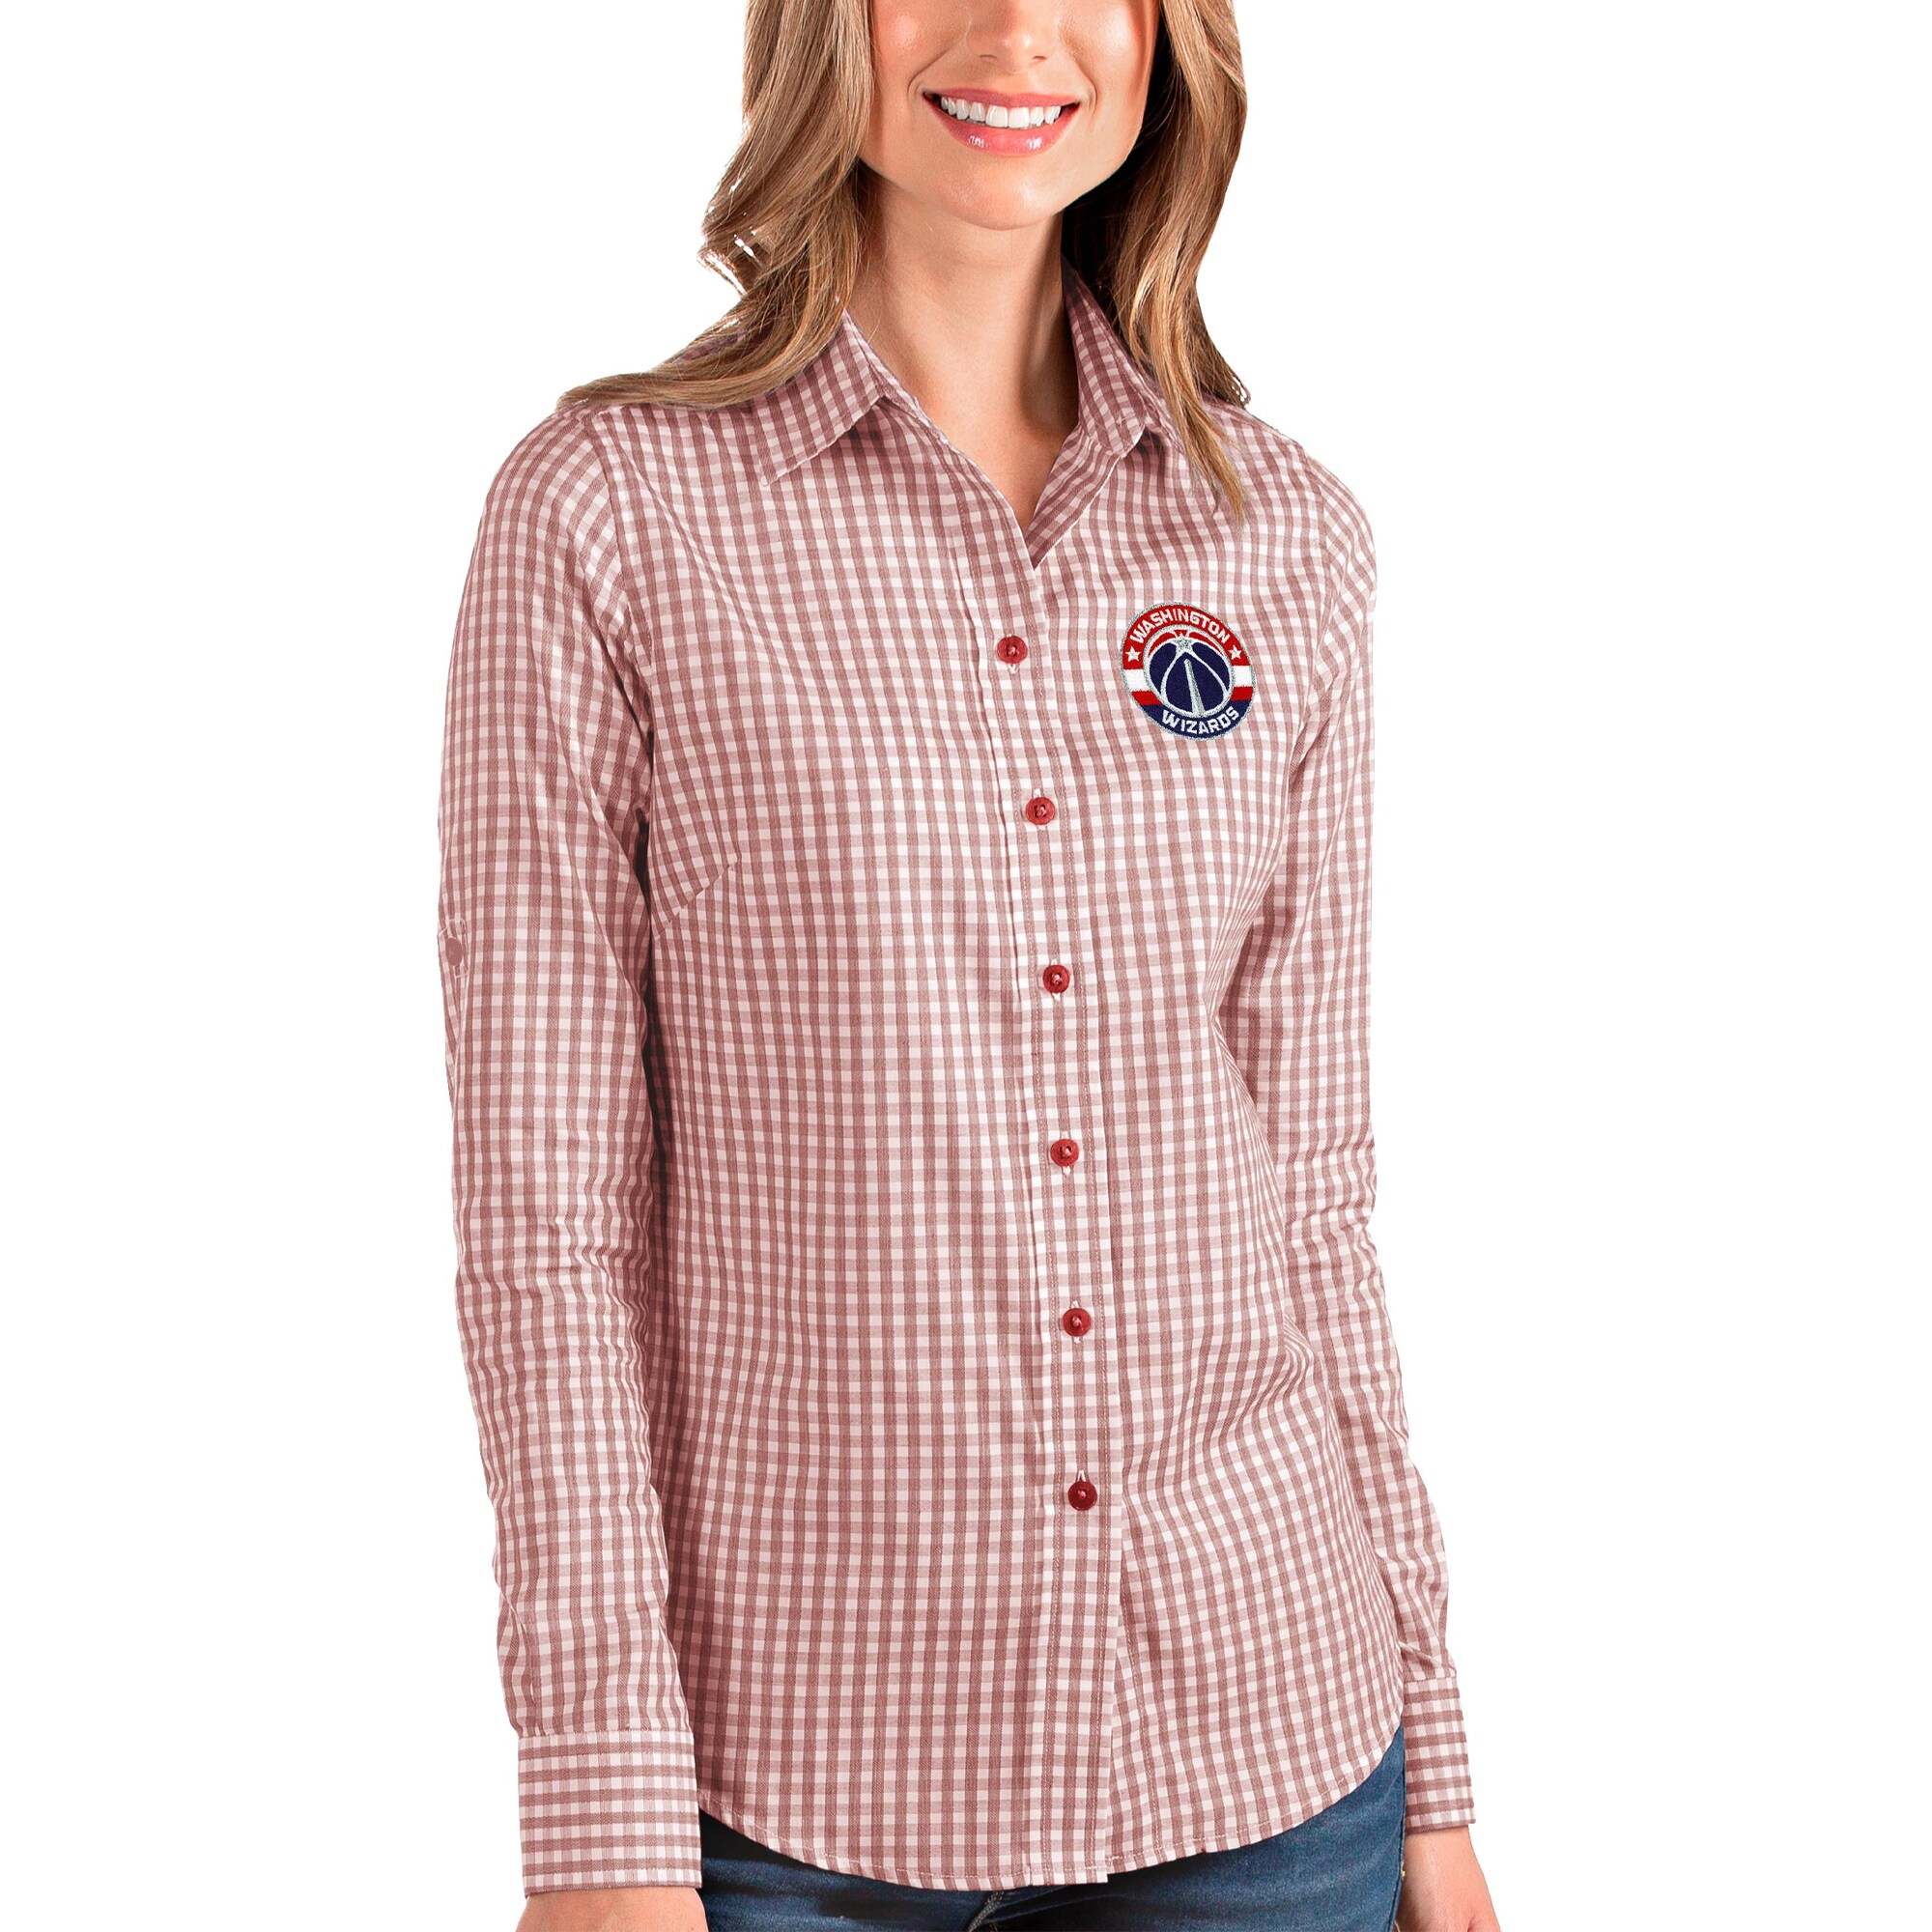 Washington Wizards Antigua Women's Structure Button-Up Long Sleeve Shirt - Red/White